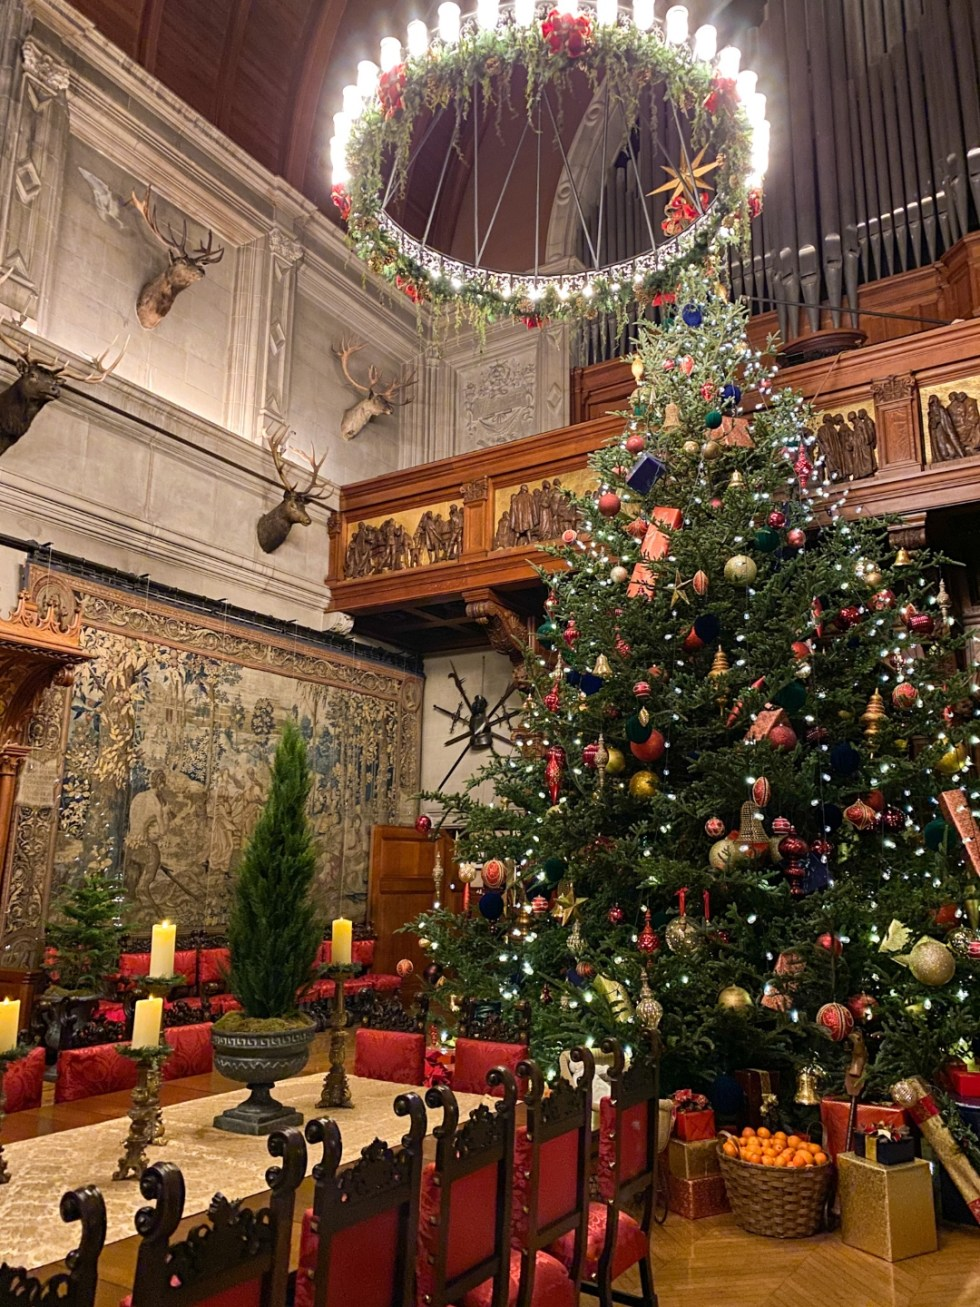 Christmas in Asheville NC by popular NC lifestyle blog, I'm Fixin' To: image of dining room with organ pipes and a large Christmas tree at the Biltmore House.